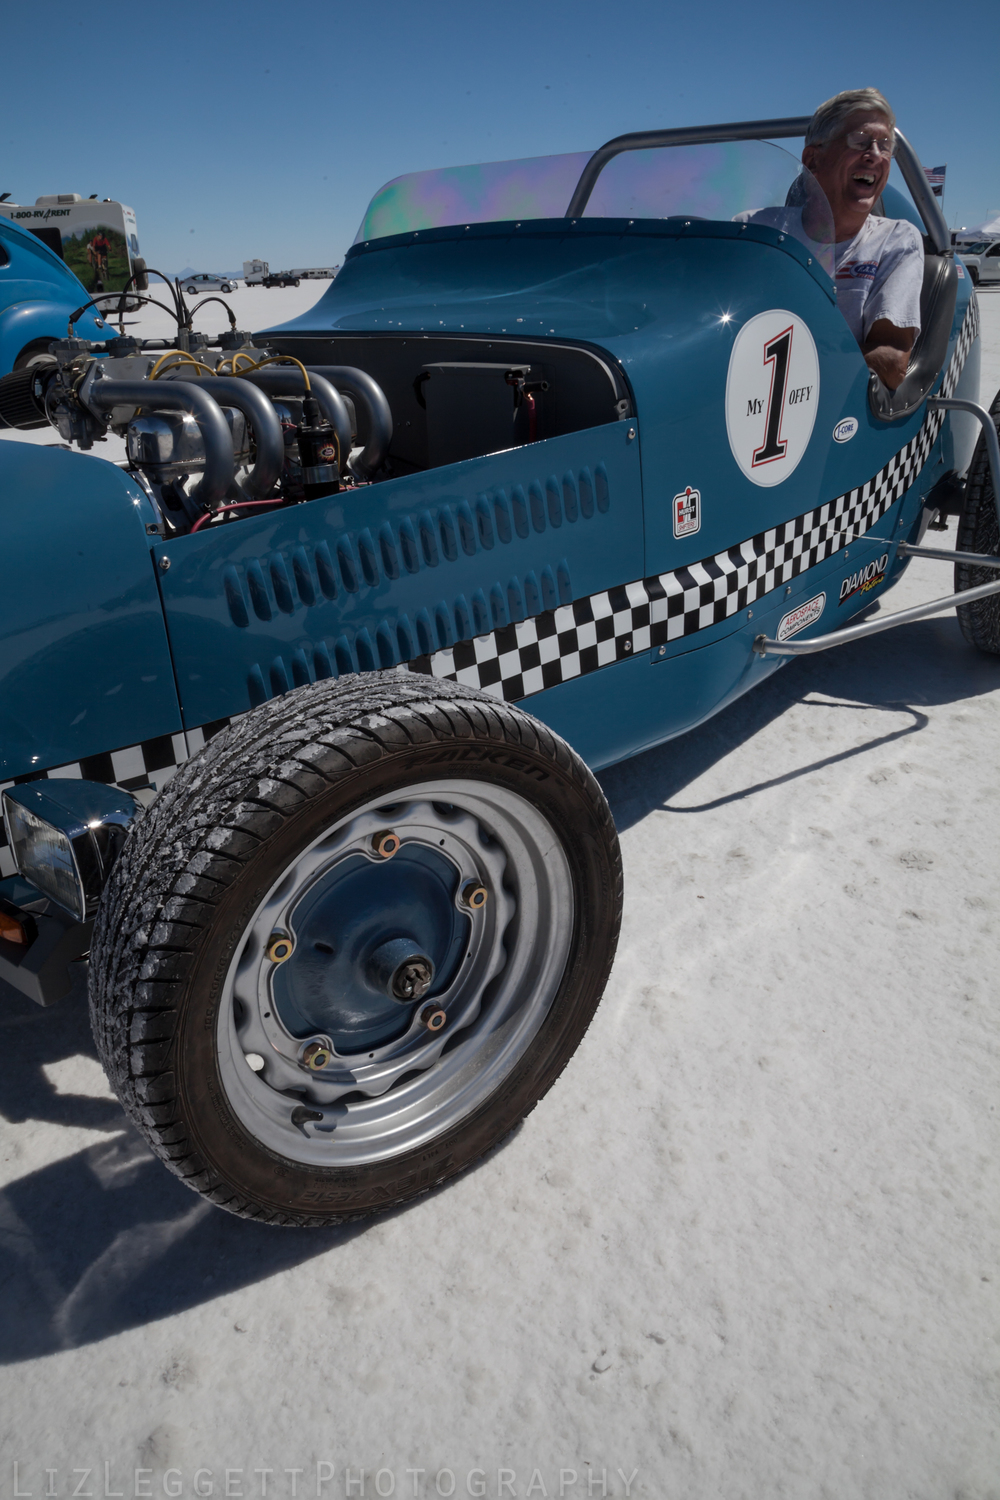 liz_leggett_photography_bonneville_day2_watermarked-6094.jpg